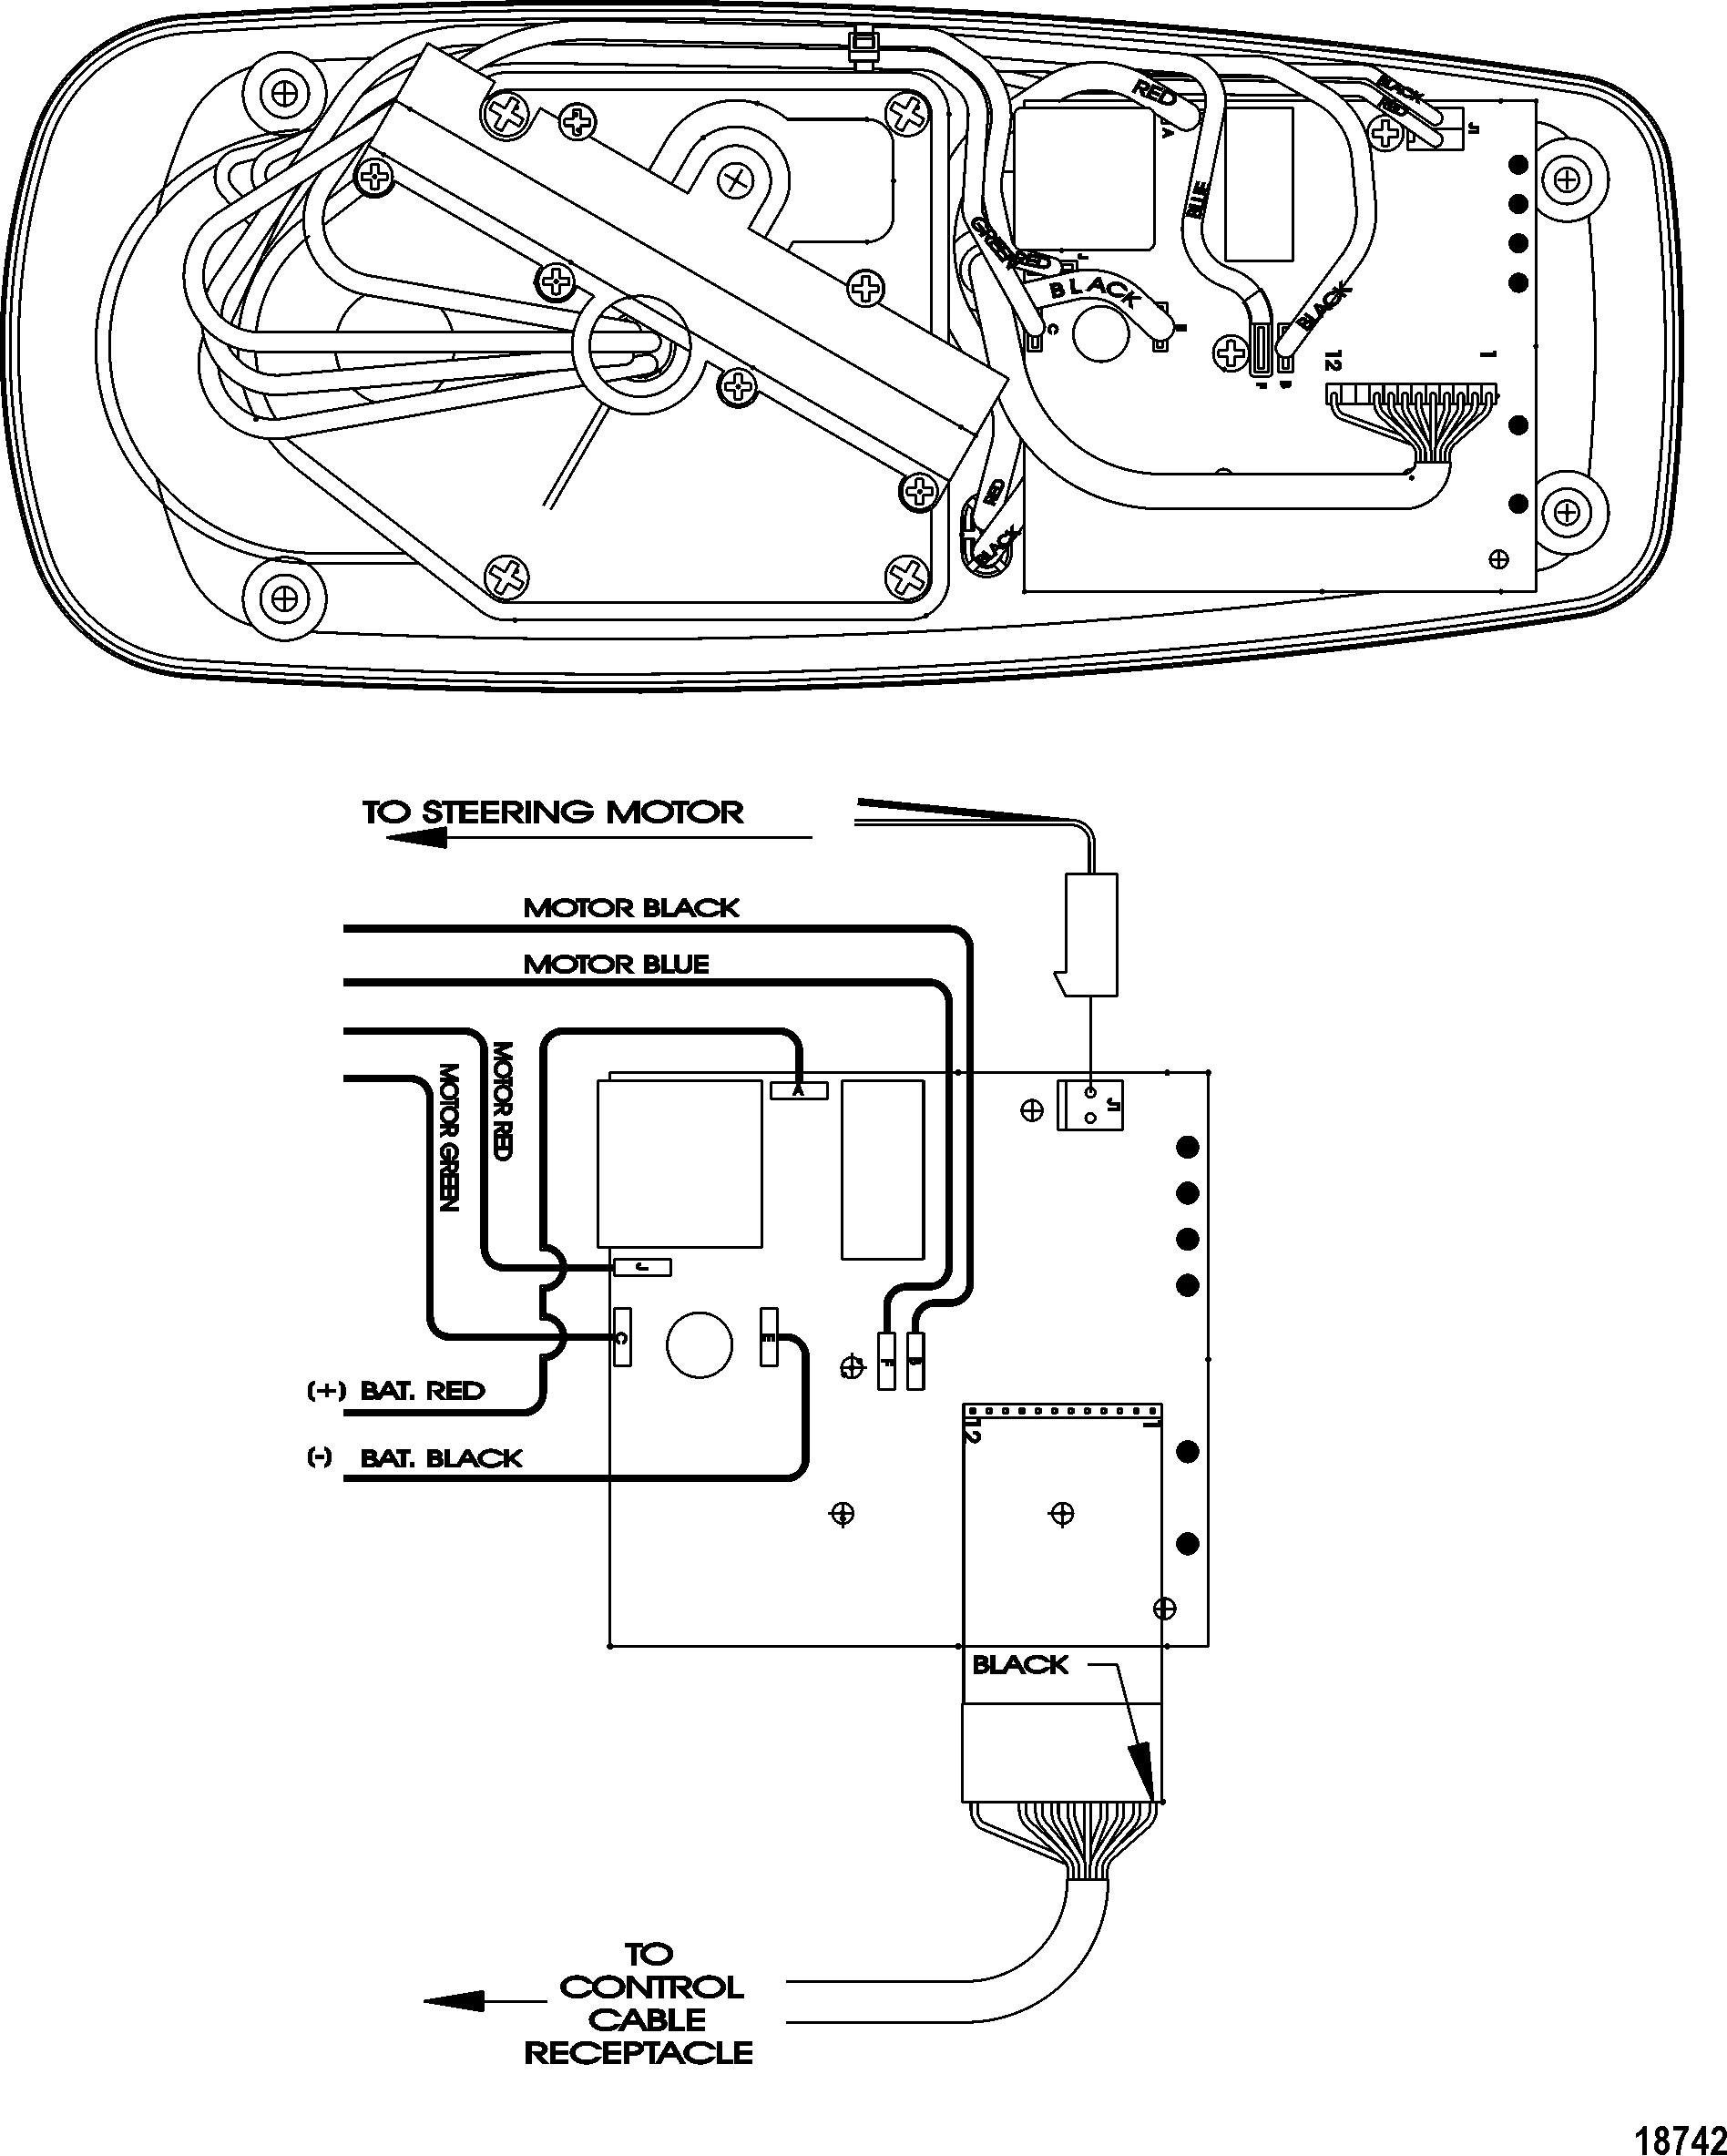 18742 motorguide wiring diagram motorguide parts diagram \u2022 free wiring mercury thruster trolling motor wiring diagram at honlapkeszites.co